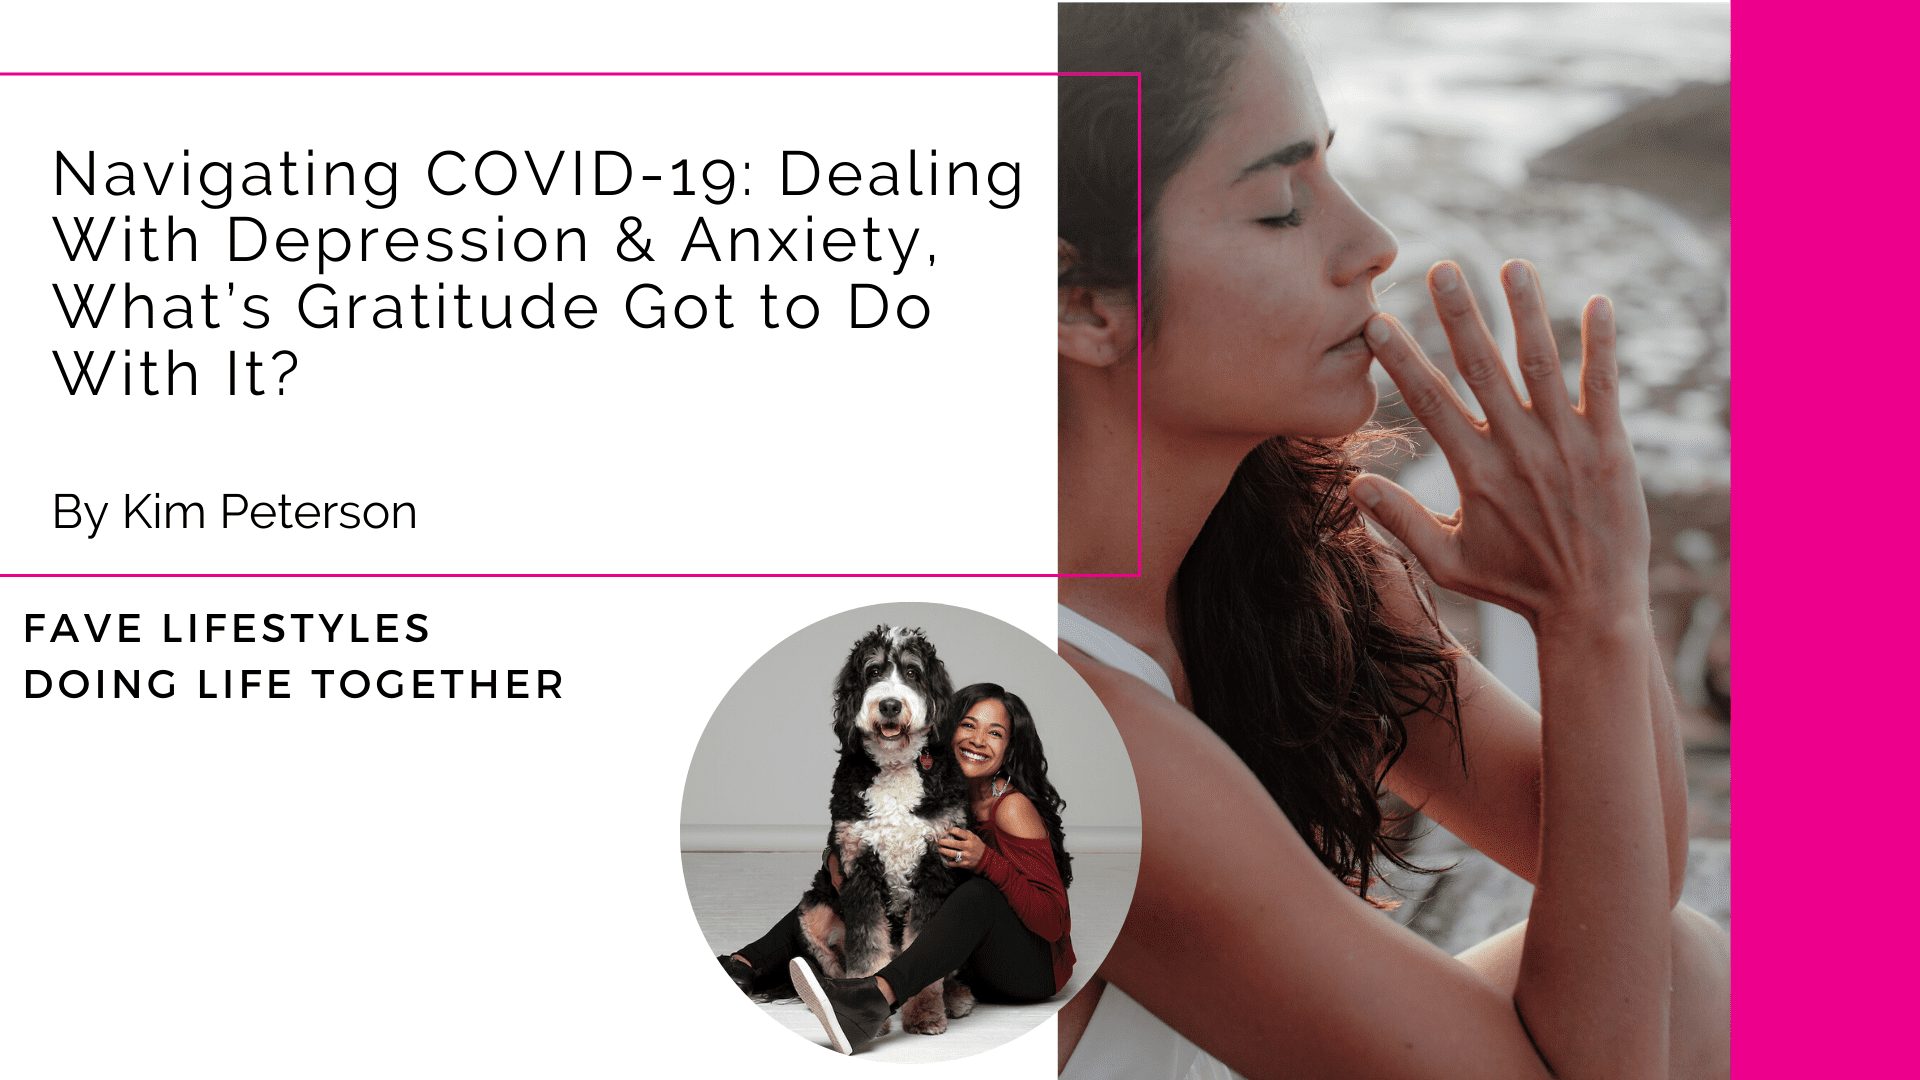 Navigating COVID-19: Dealing With Depression & Anxiety, What's Gratitude Got to Do With It?